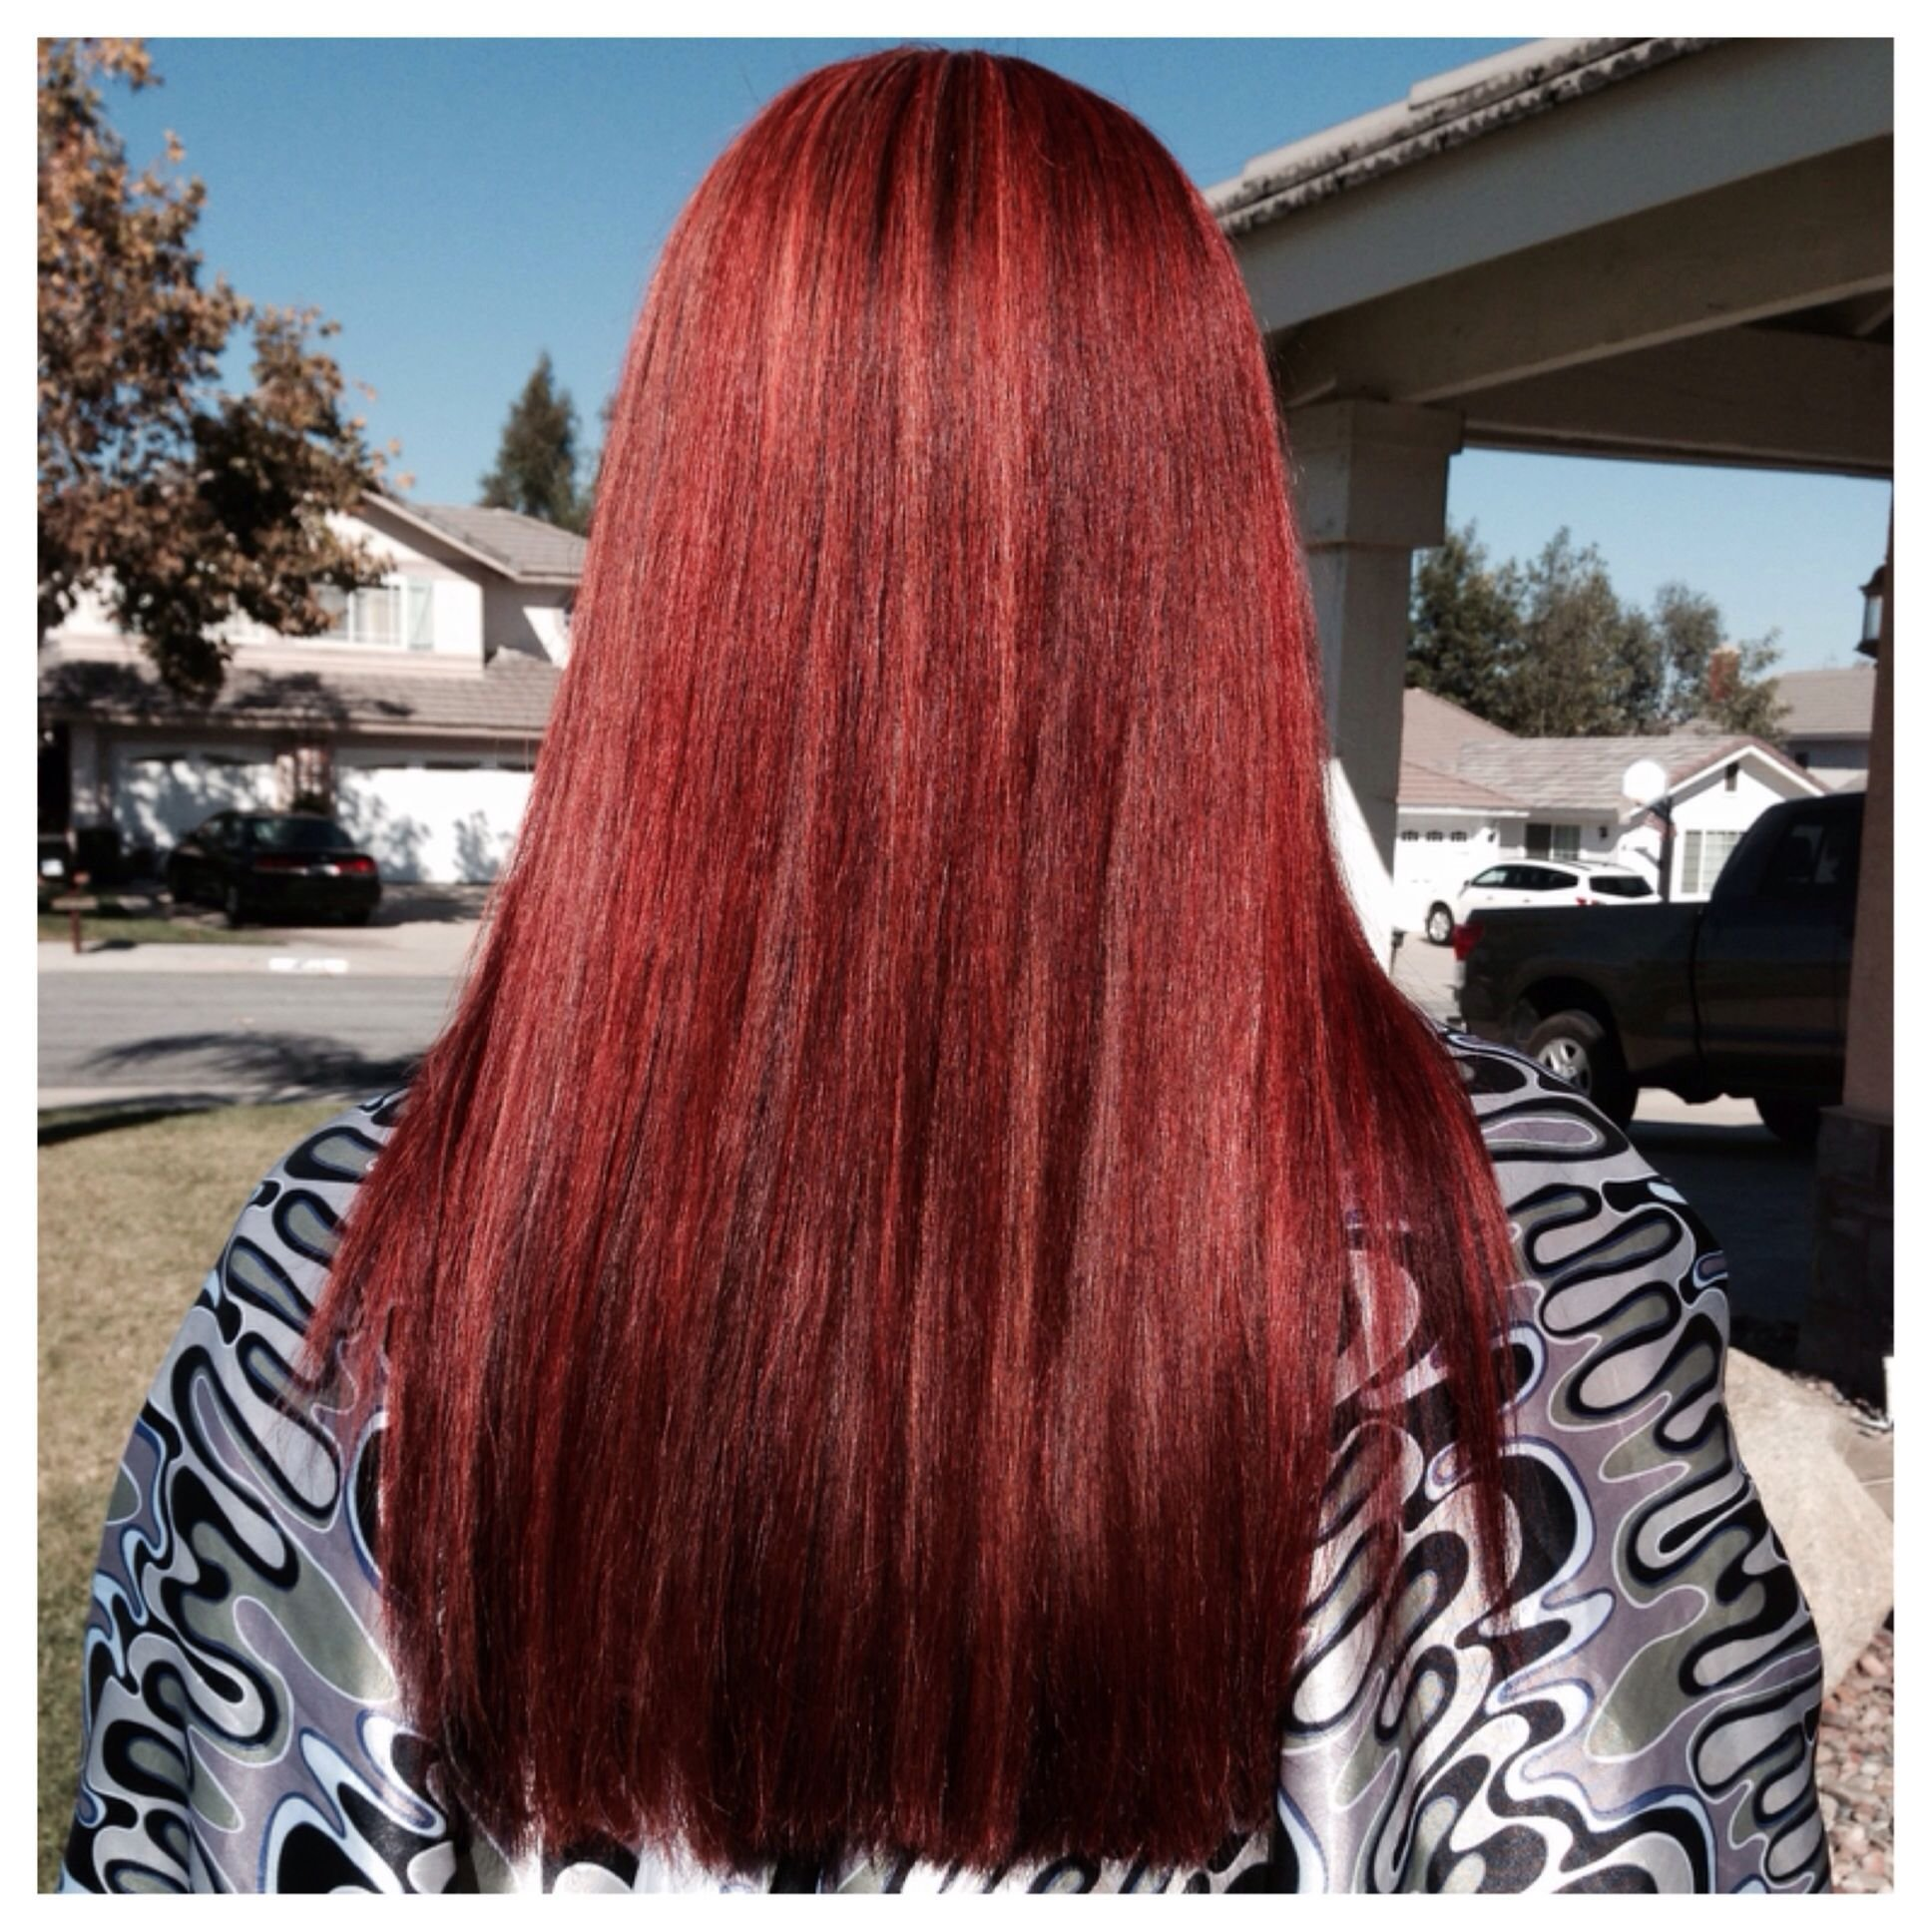 The Best Matrix Socolor Hd Reds Red Hair Long Hair Dimensional Red Pictures